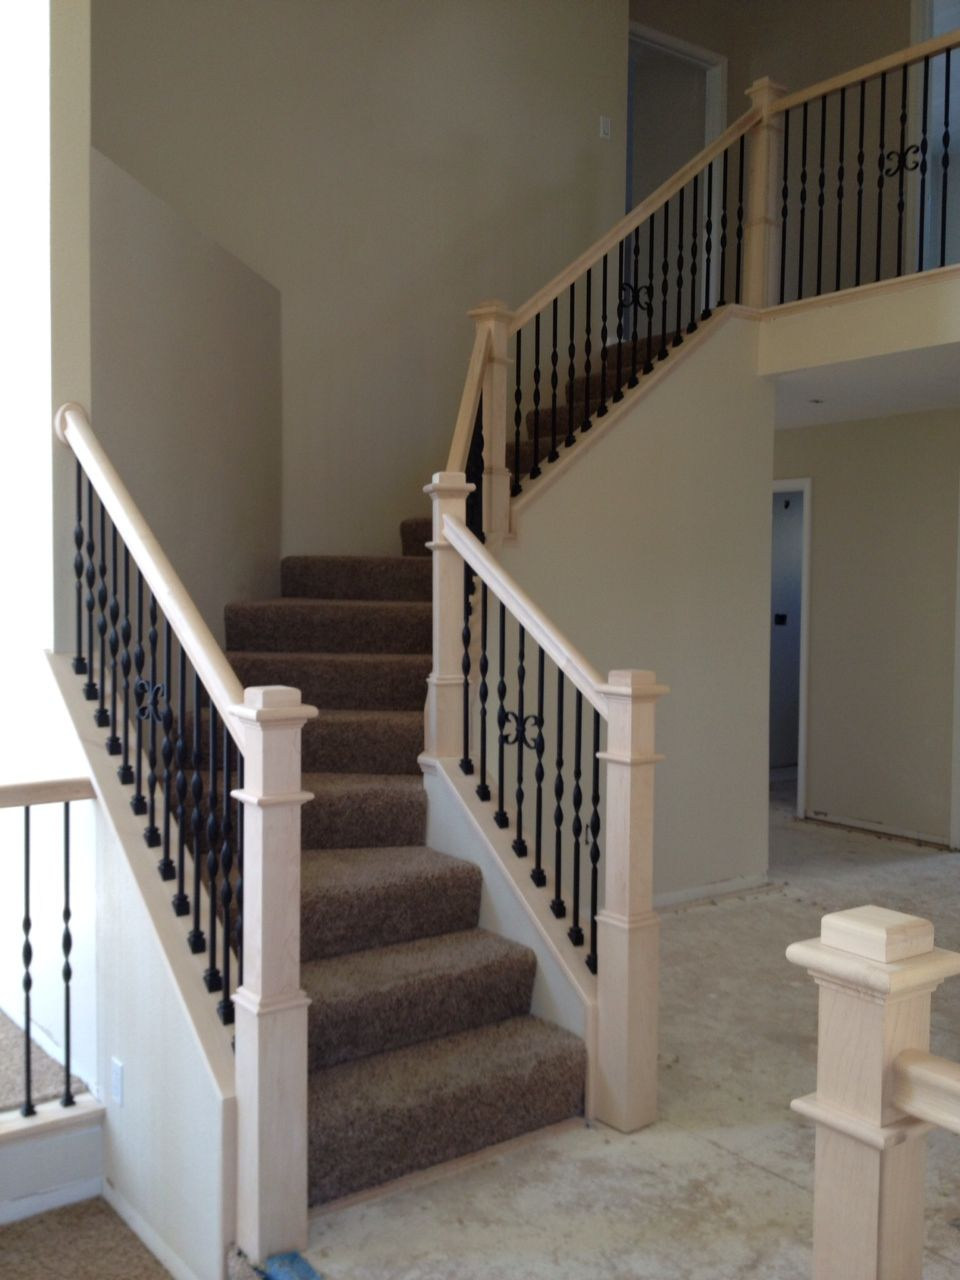 Best Stair Contemporary Spiral Staircase For Home Interior 640 x 480